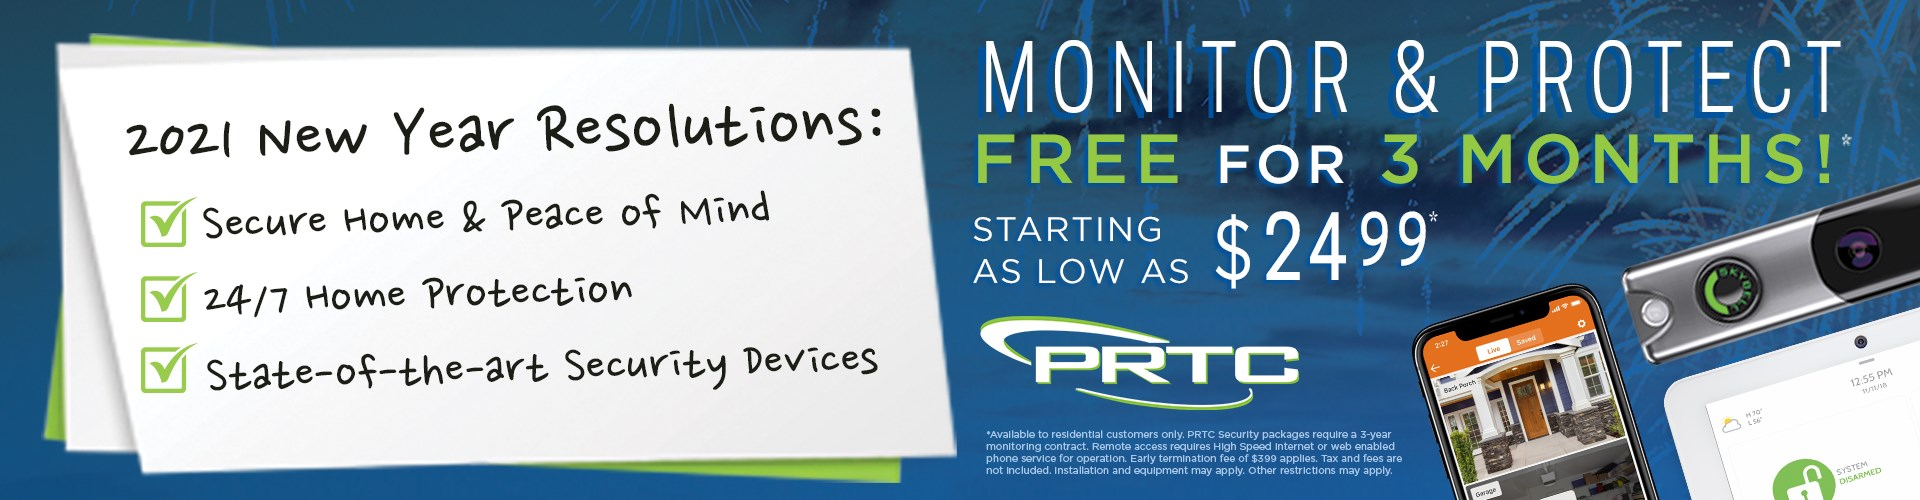 Monitor & Protect free for 3 months